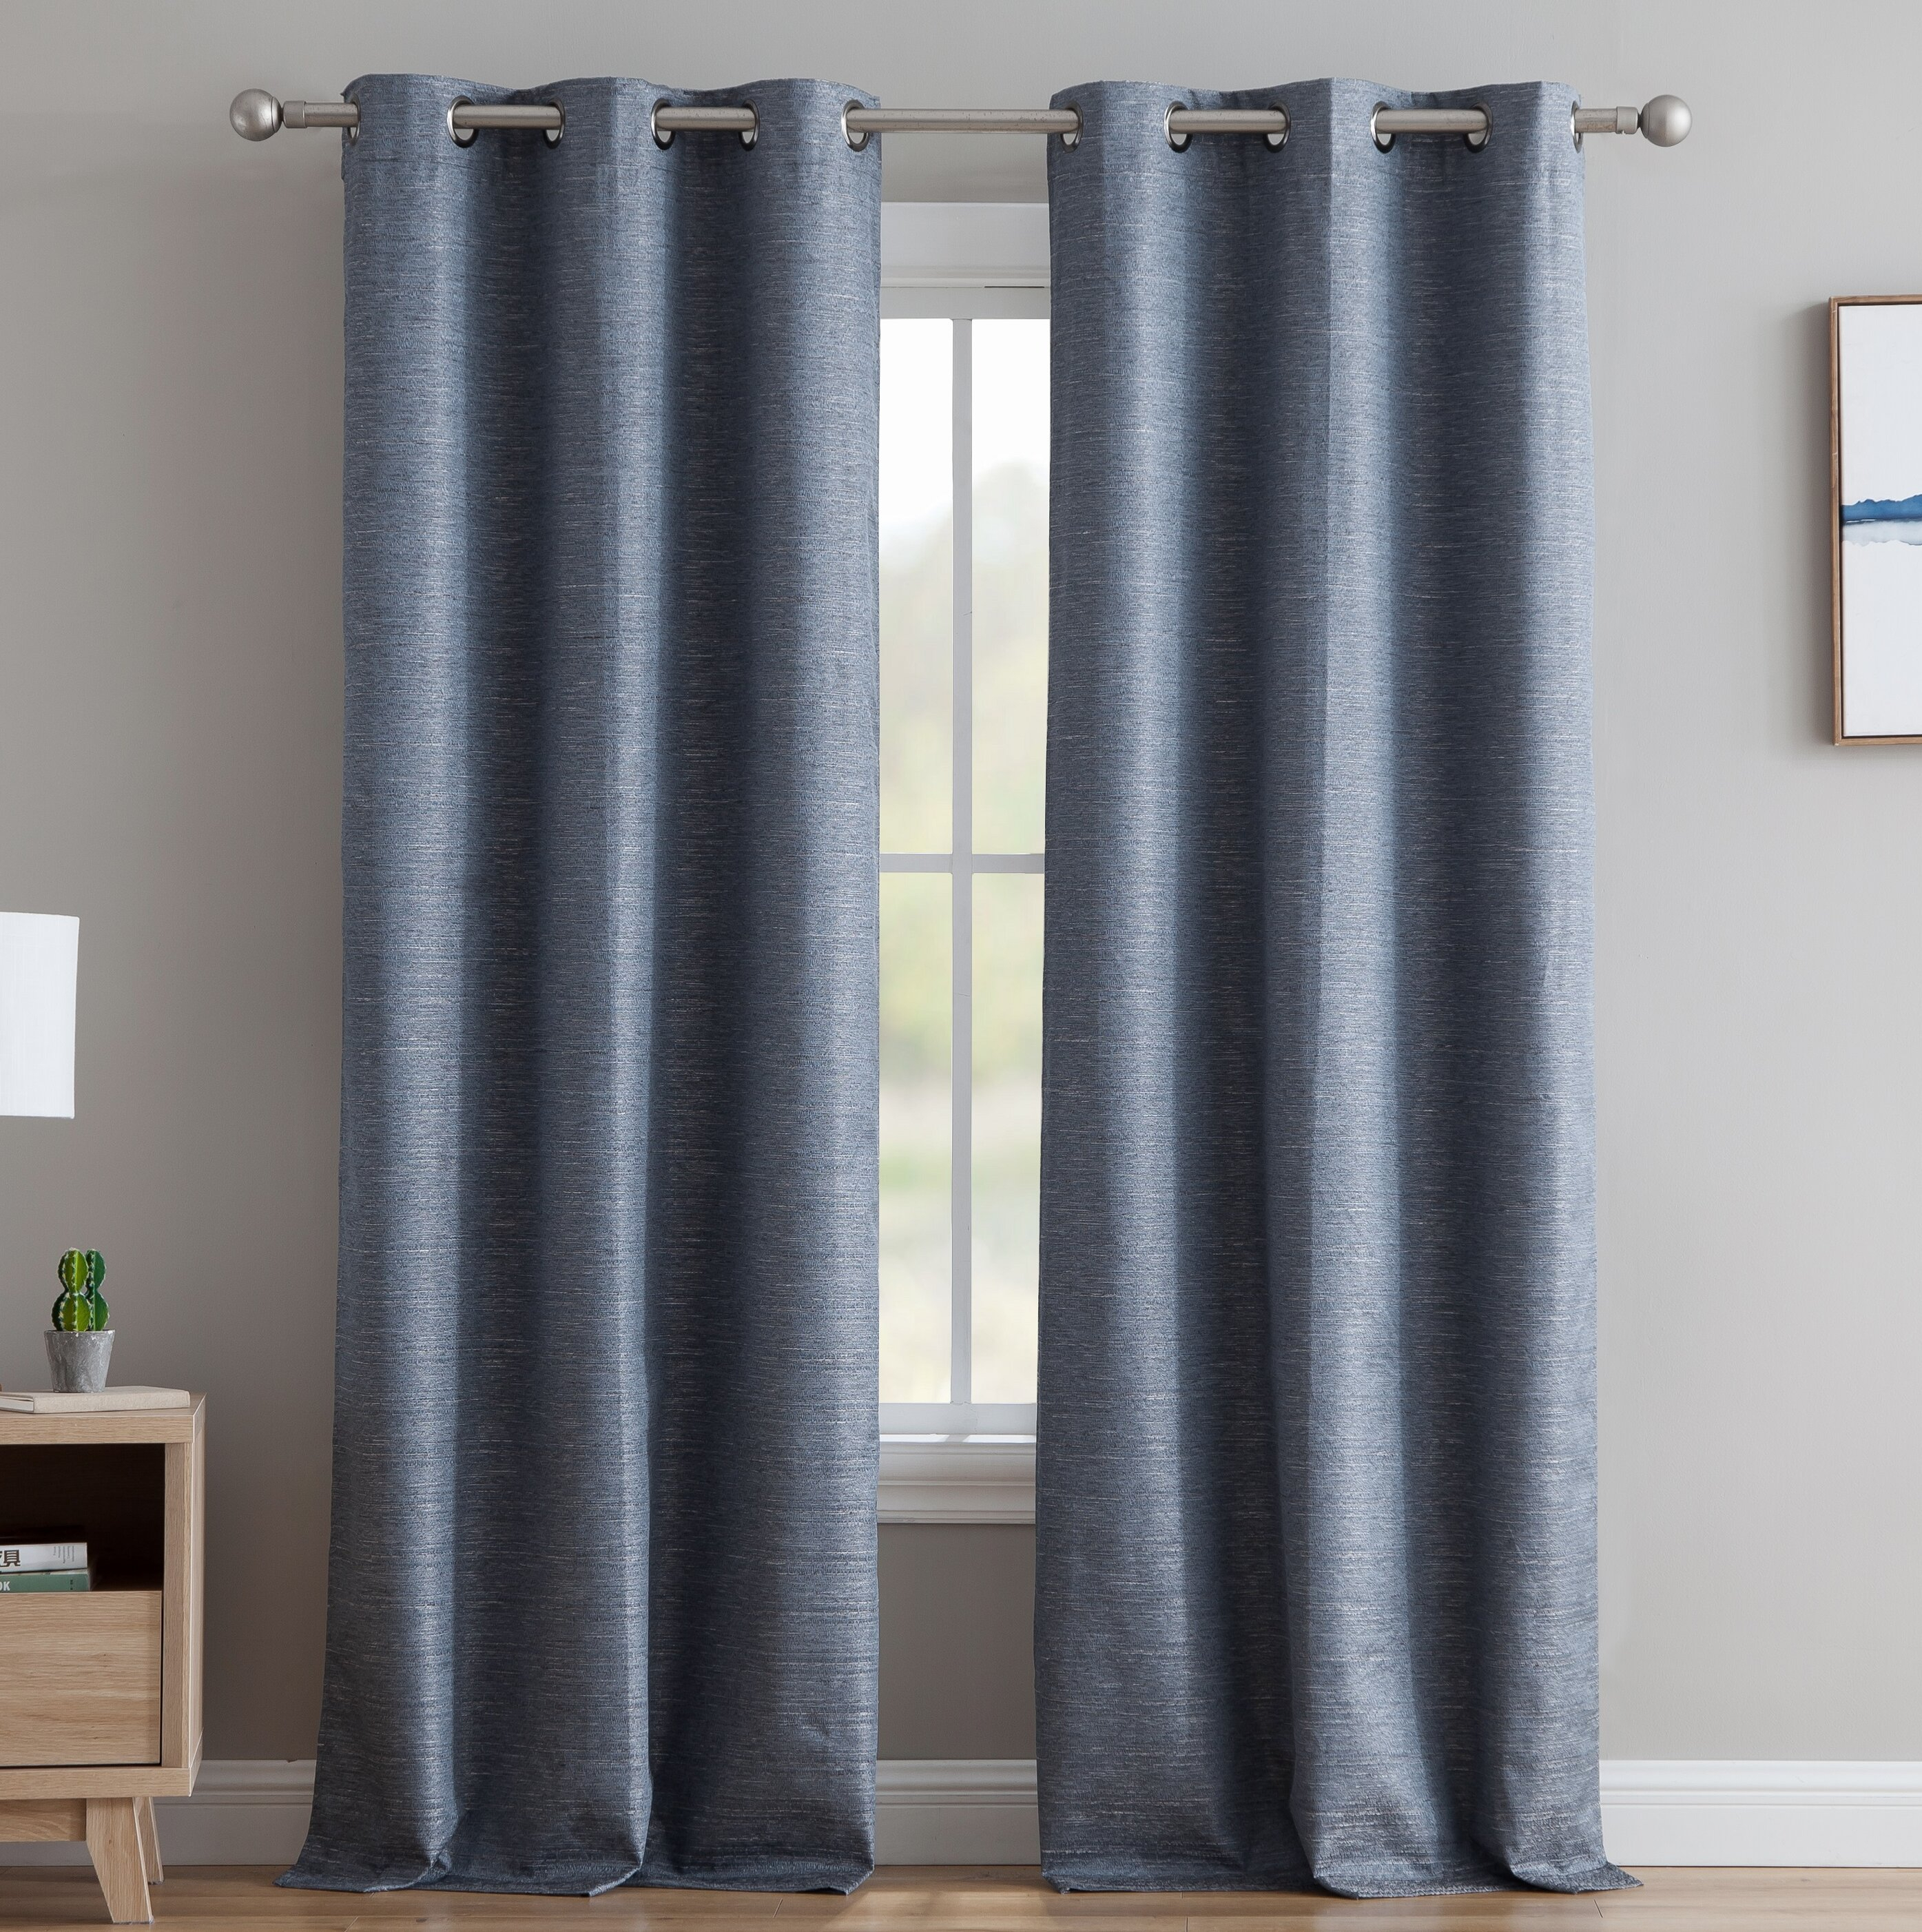 Middlewich Textured Solid Max Blackout Thermal Grommet Curtain Panels In Embossed Thermal Weaved Blackout Grommet Drapery Curtains (View 9 of 20)